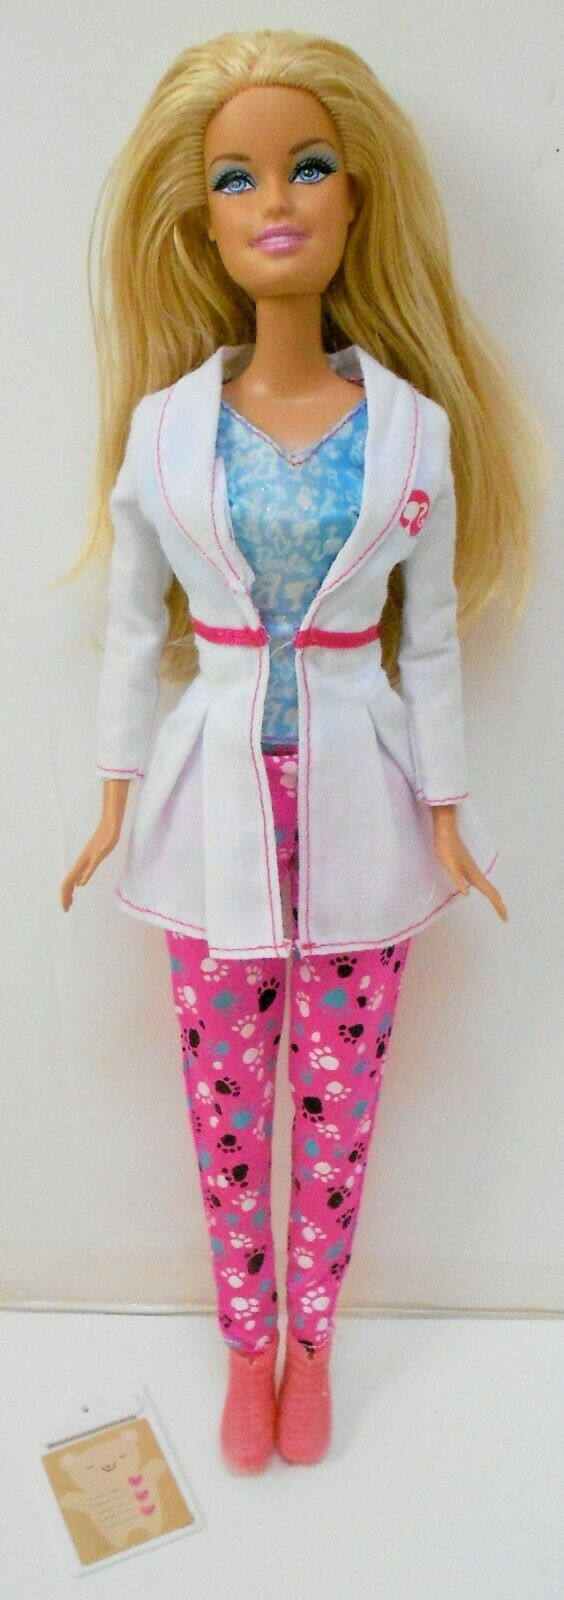 CUTE Mattel 1998 BARBIE PET VET DOCTOR DOLL W/LAB COAT PANTS SHOES CLIP BOARD - $12.99